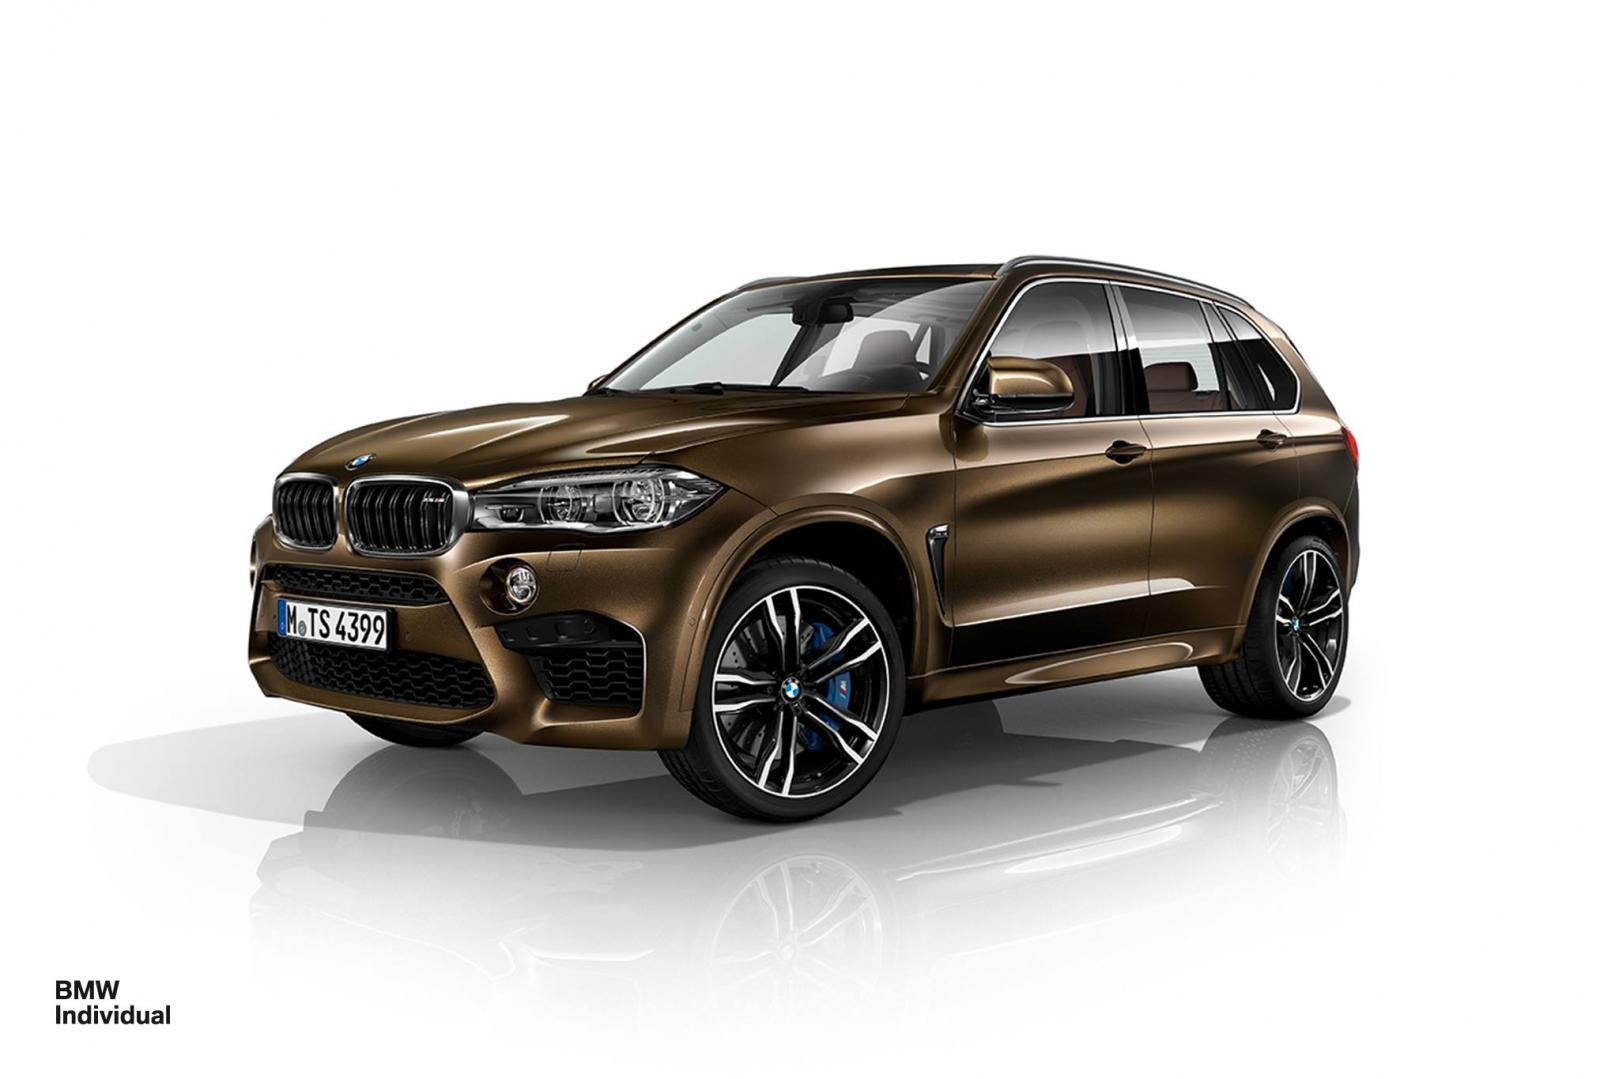 official 2015 bmw x5 m and x6 m by bmw individual gtspirit. Black Bedroom Furniture Sets. Home Design Ideas